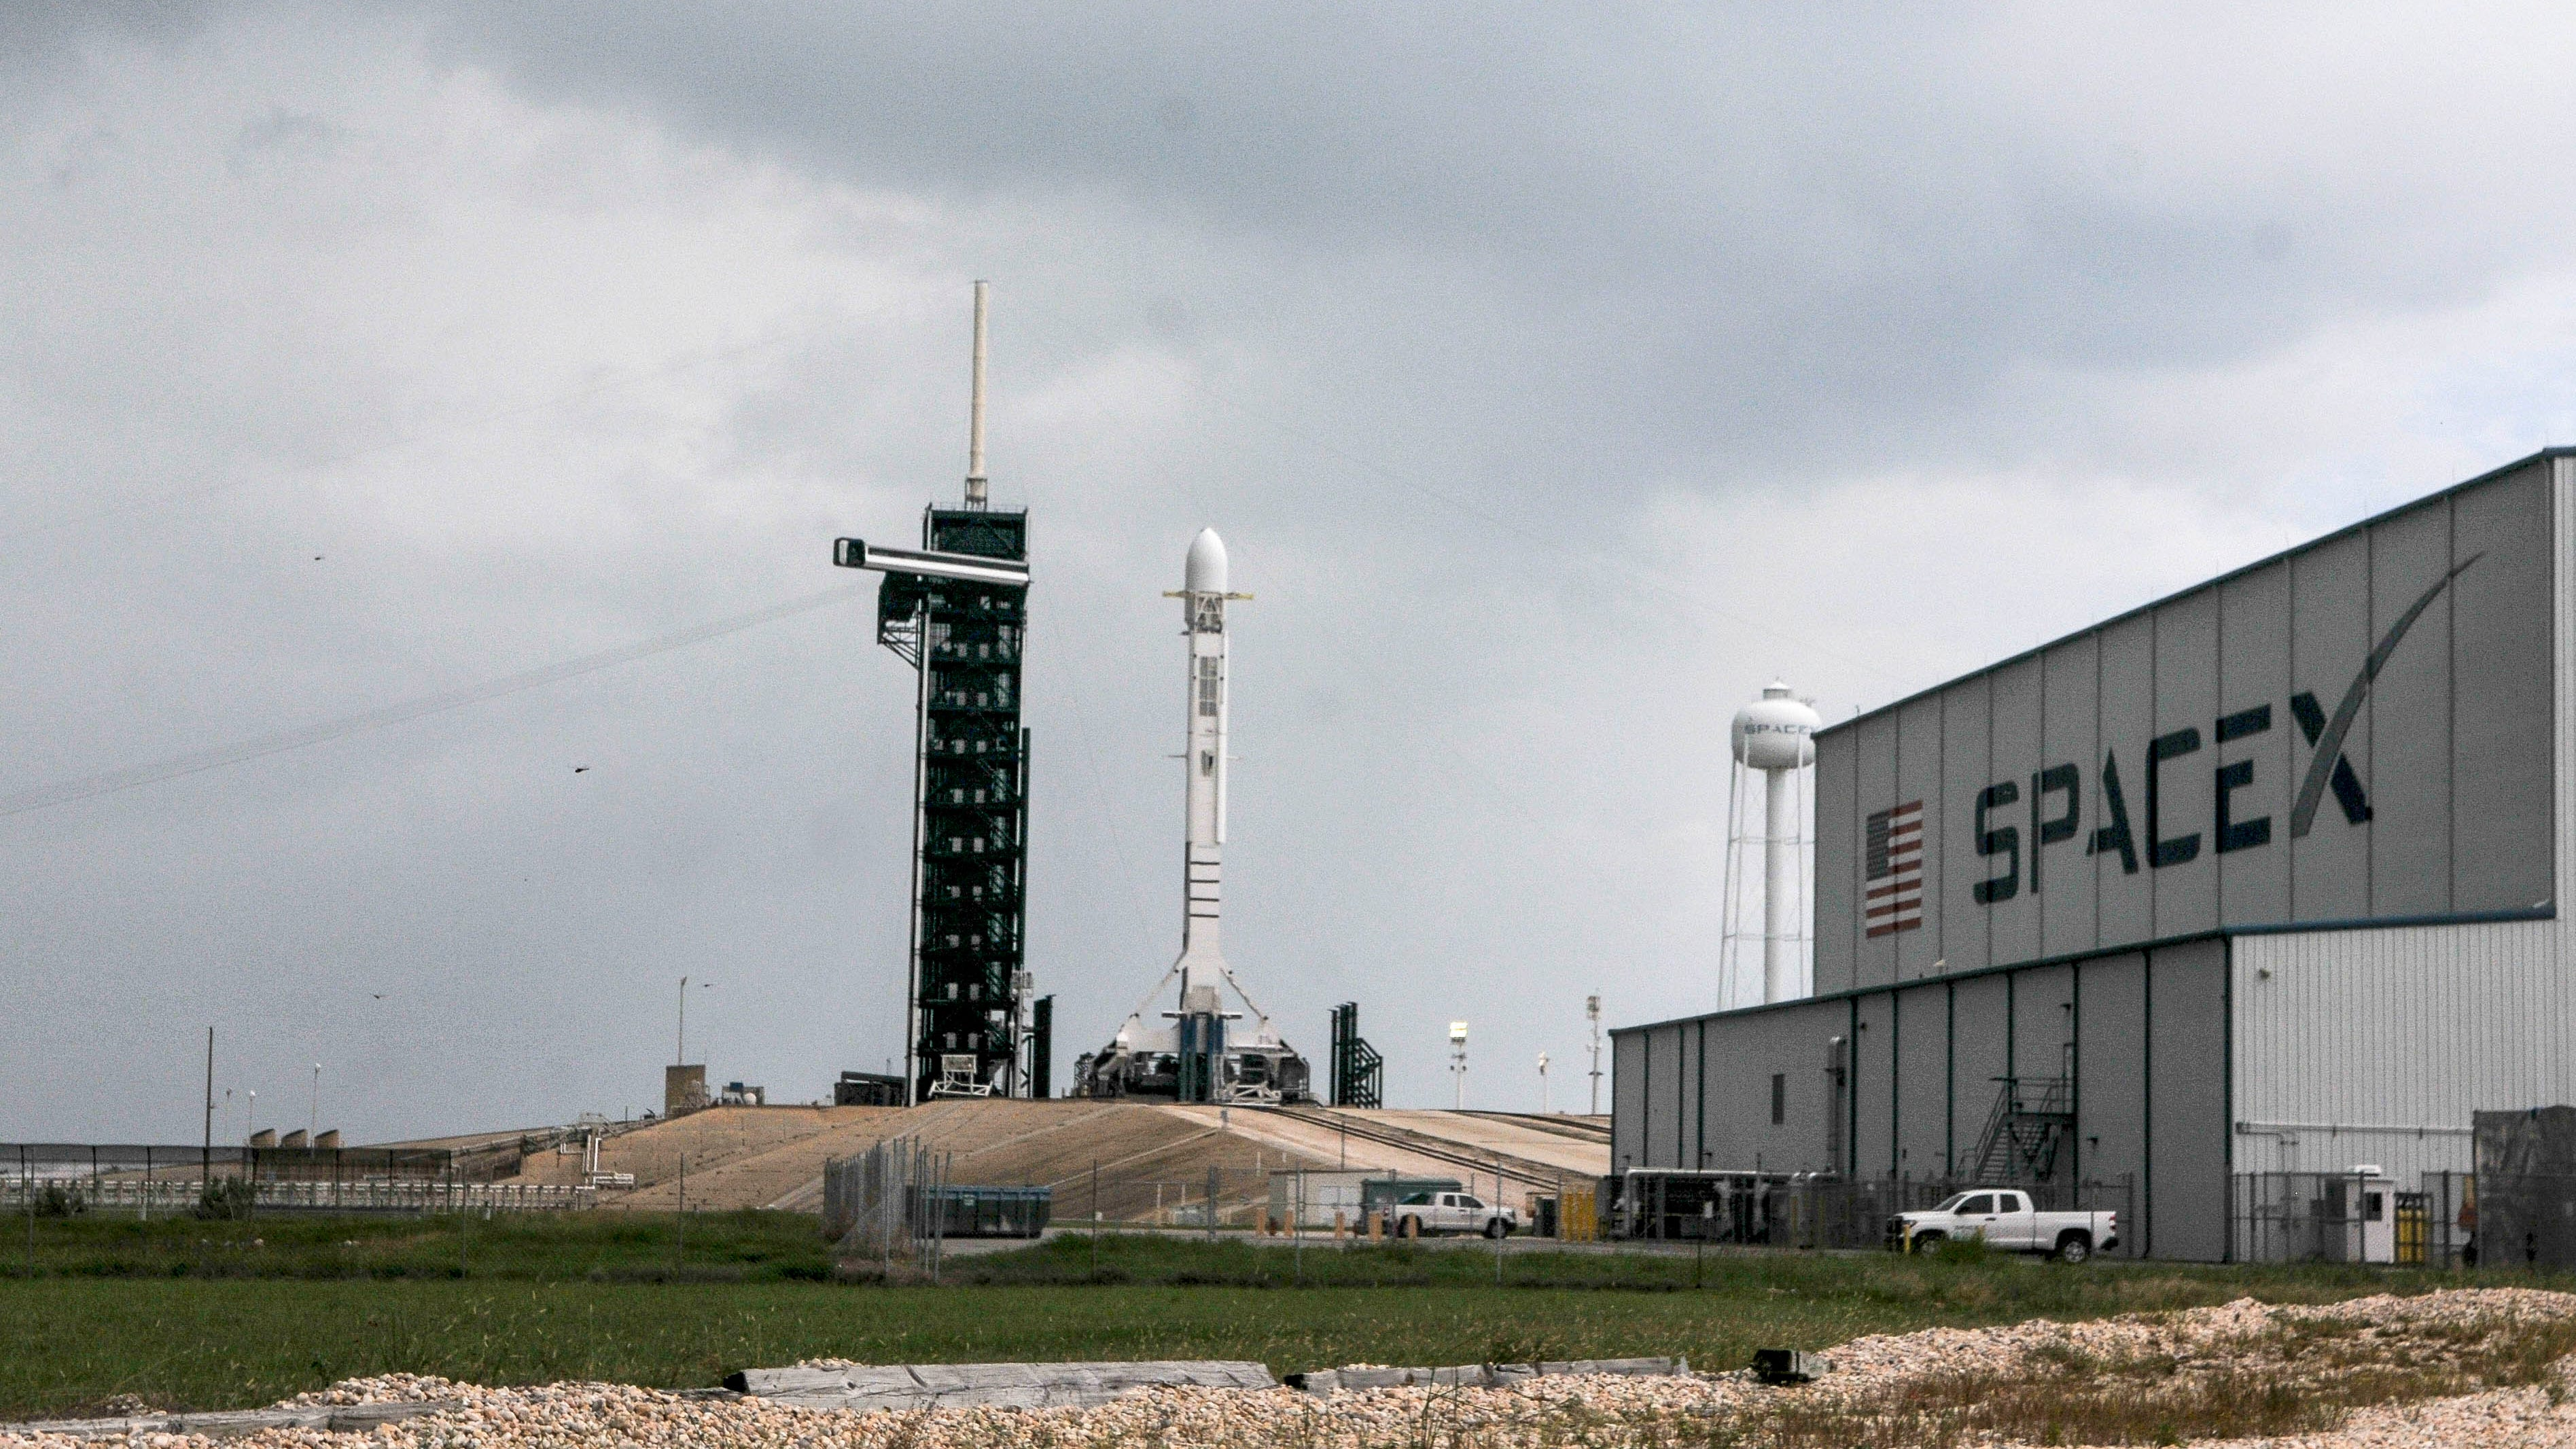 A SpaceX Falcon 9 rocket remains on Pad 39A at Ken